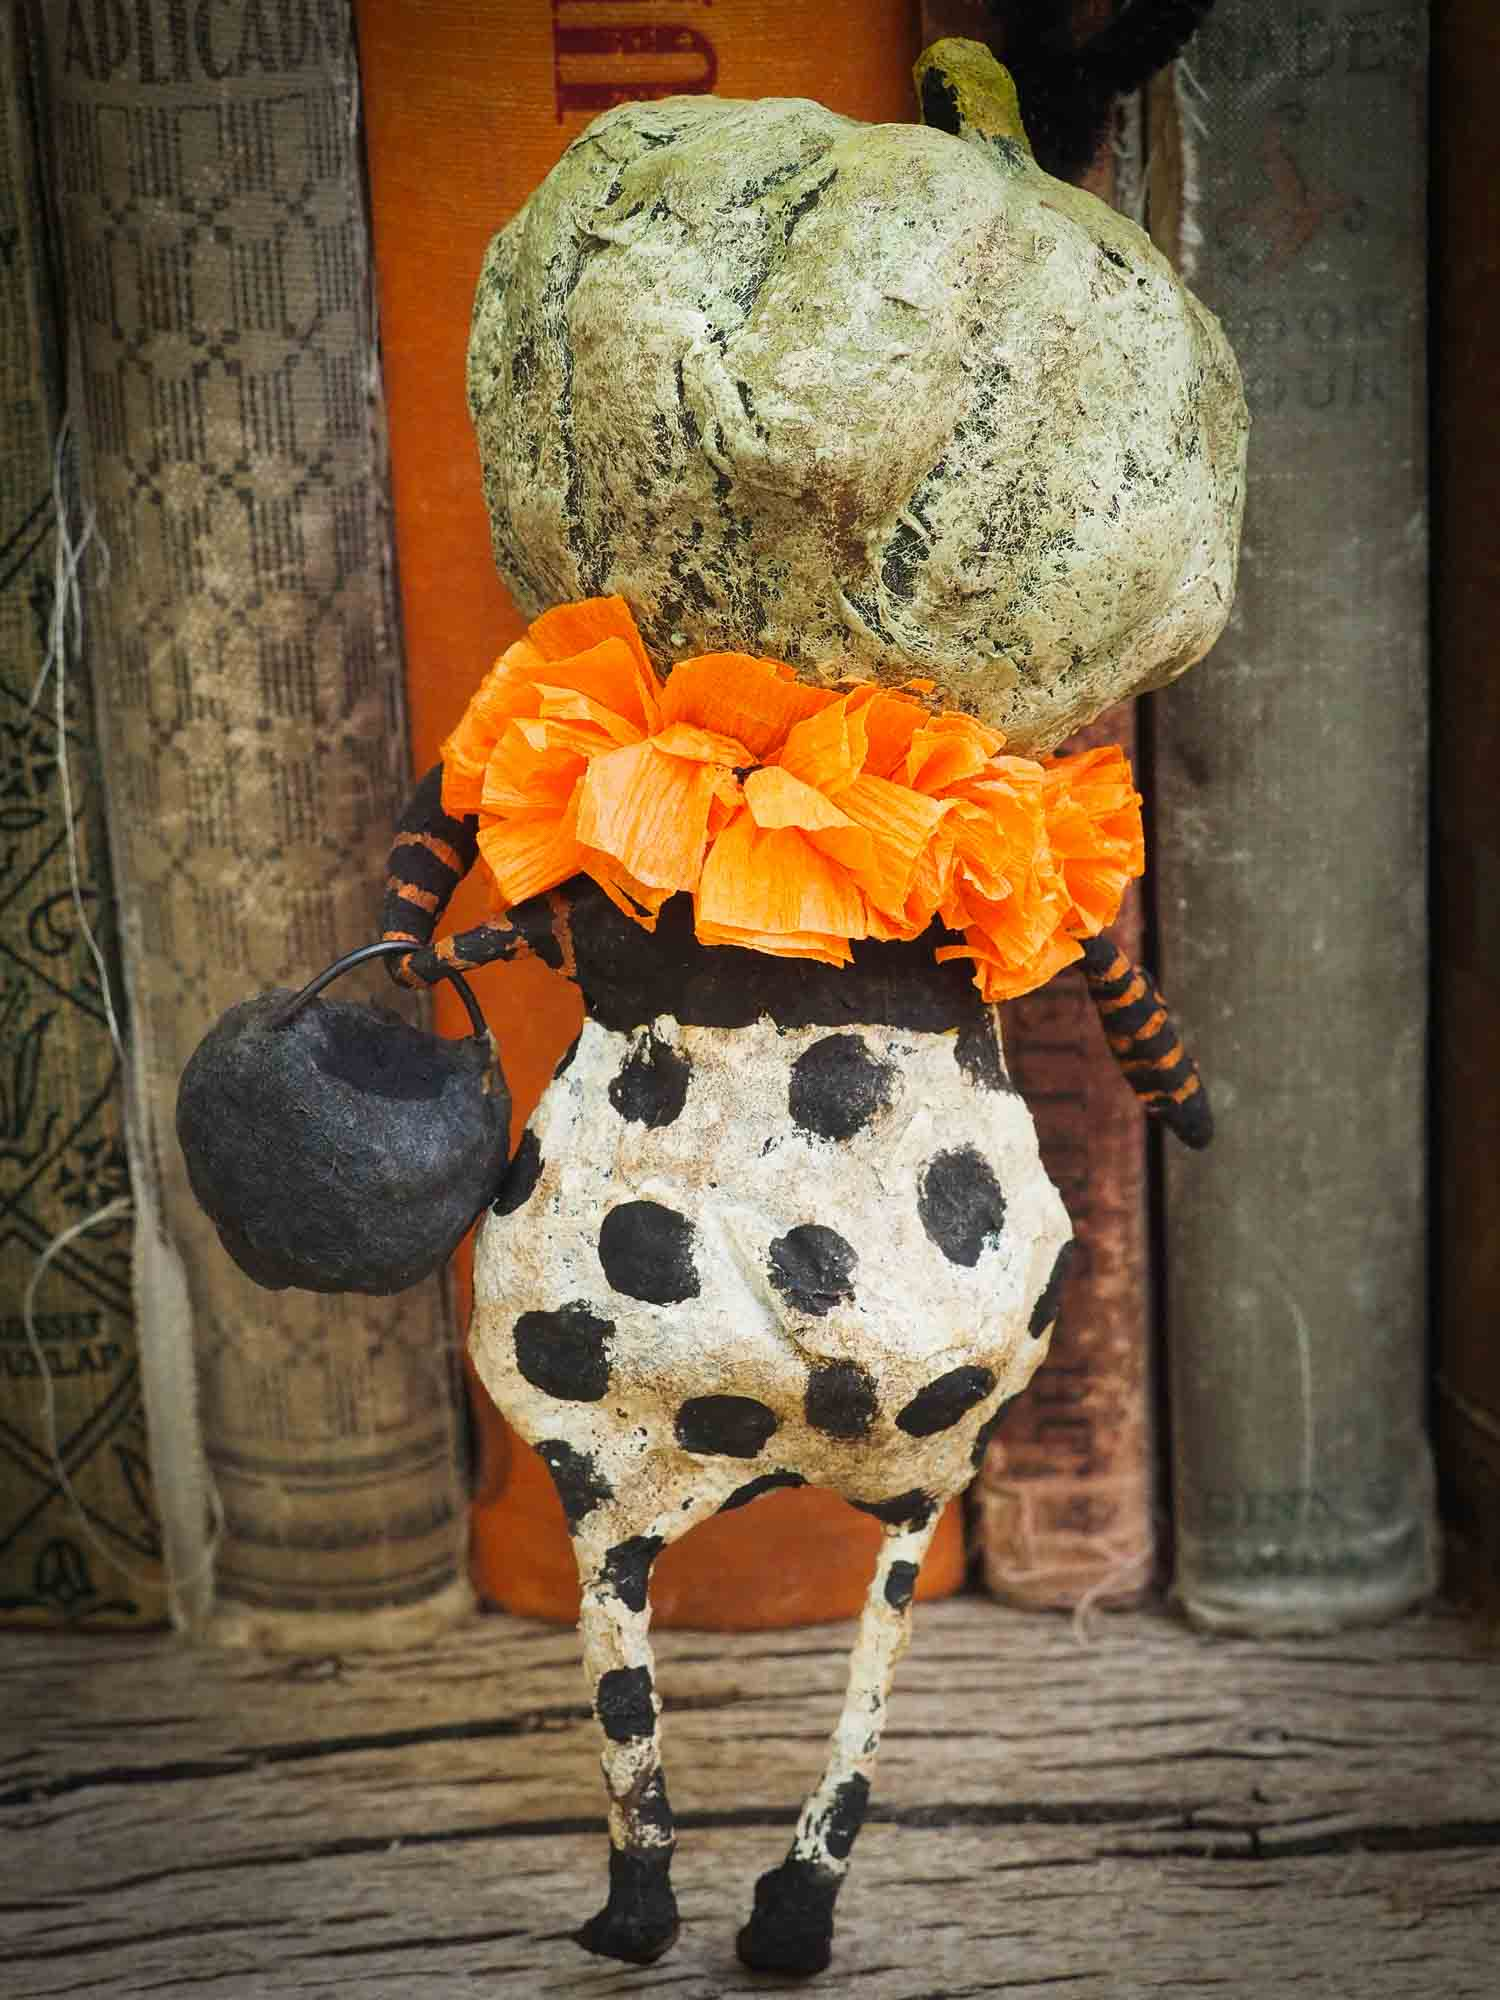 Jack-O-Lantern pumpkin ornament Halloween decoration. Danita art original handmade art doll pumpkin made with spun cotton from collection of witches, ghosts, skeletons, jack-o-lantern, pumpkin, vampire, ghouls and other whimsical folk art style home decor.